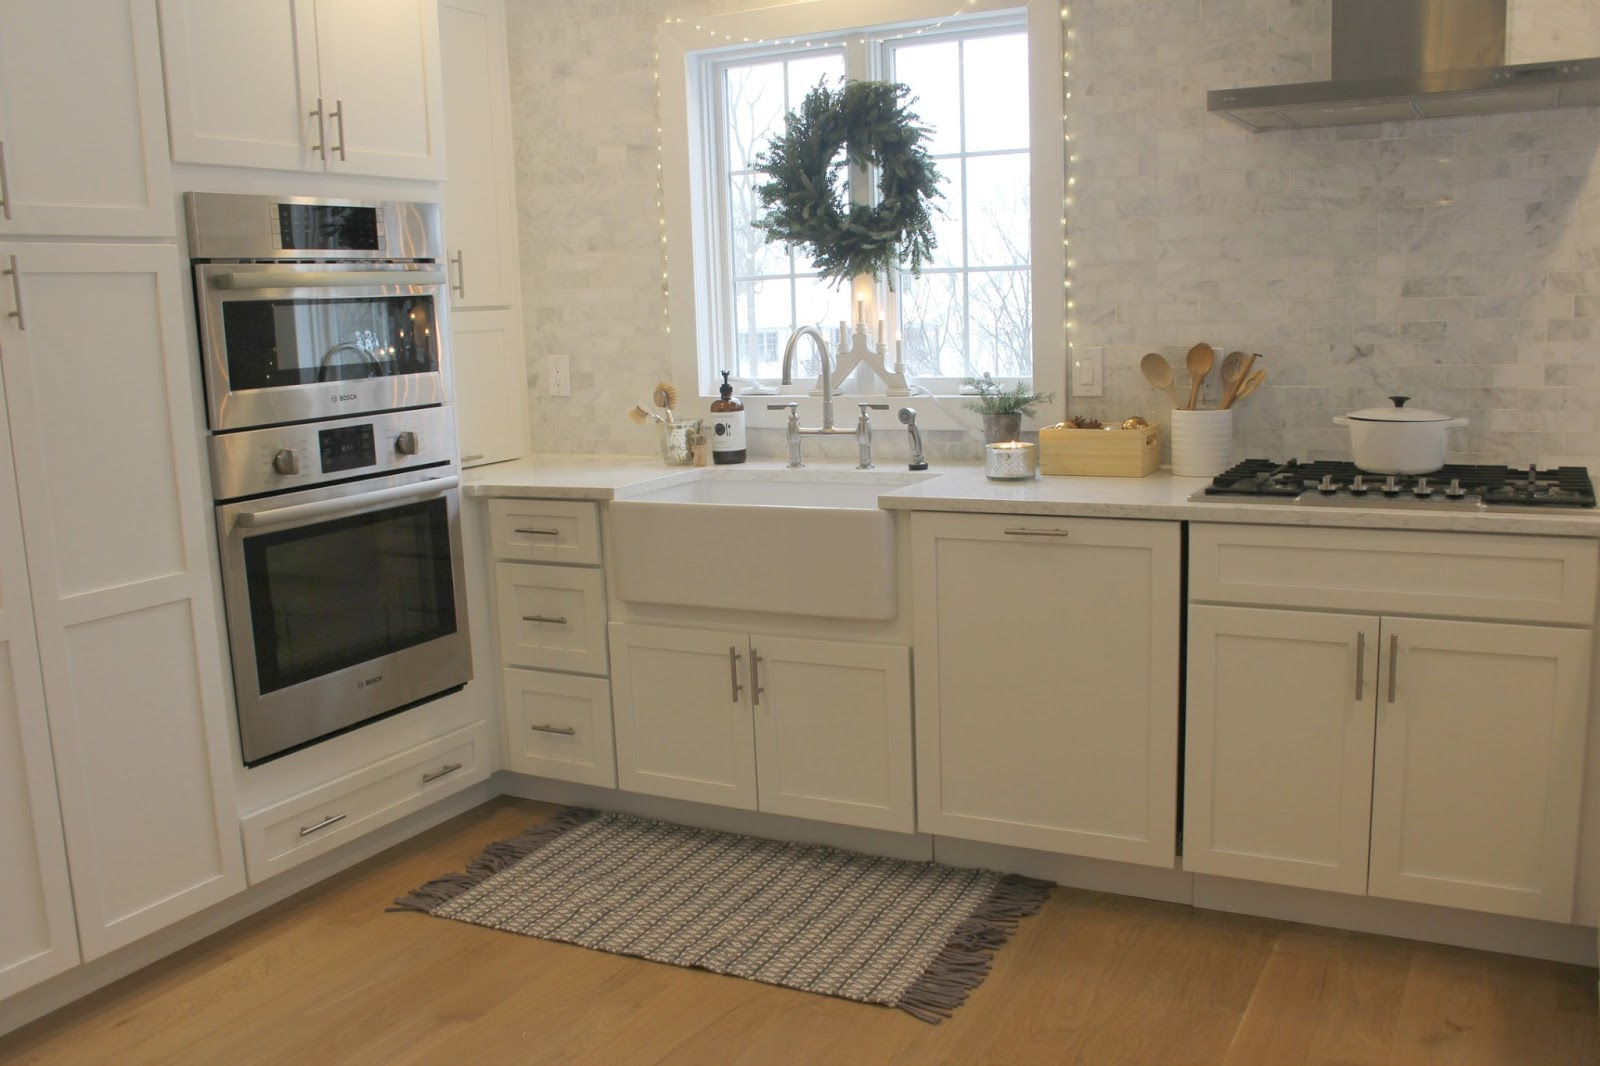 White Shaker style kitchen with farm sink and fresh green wreath